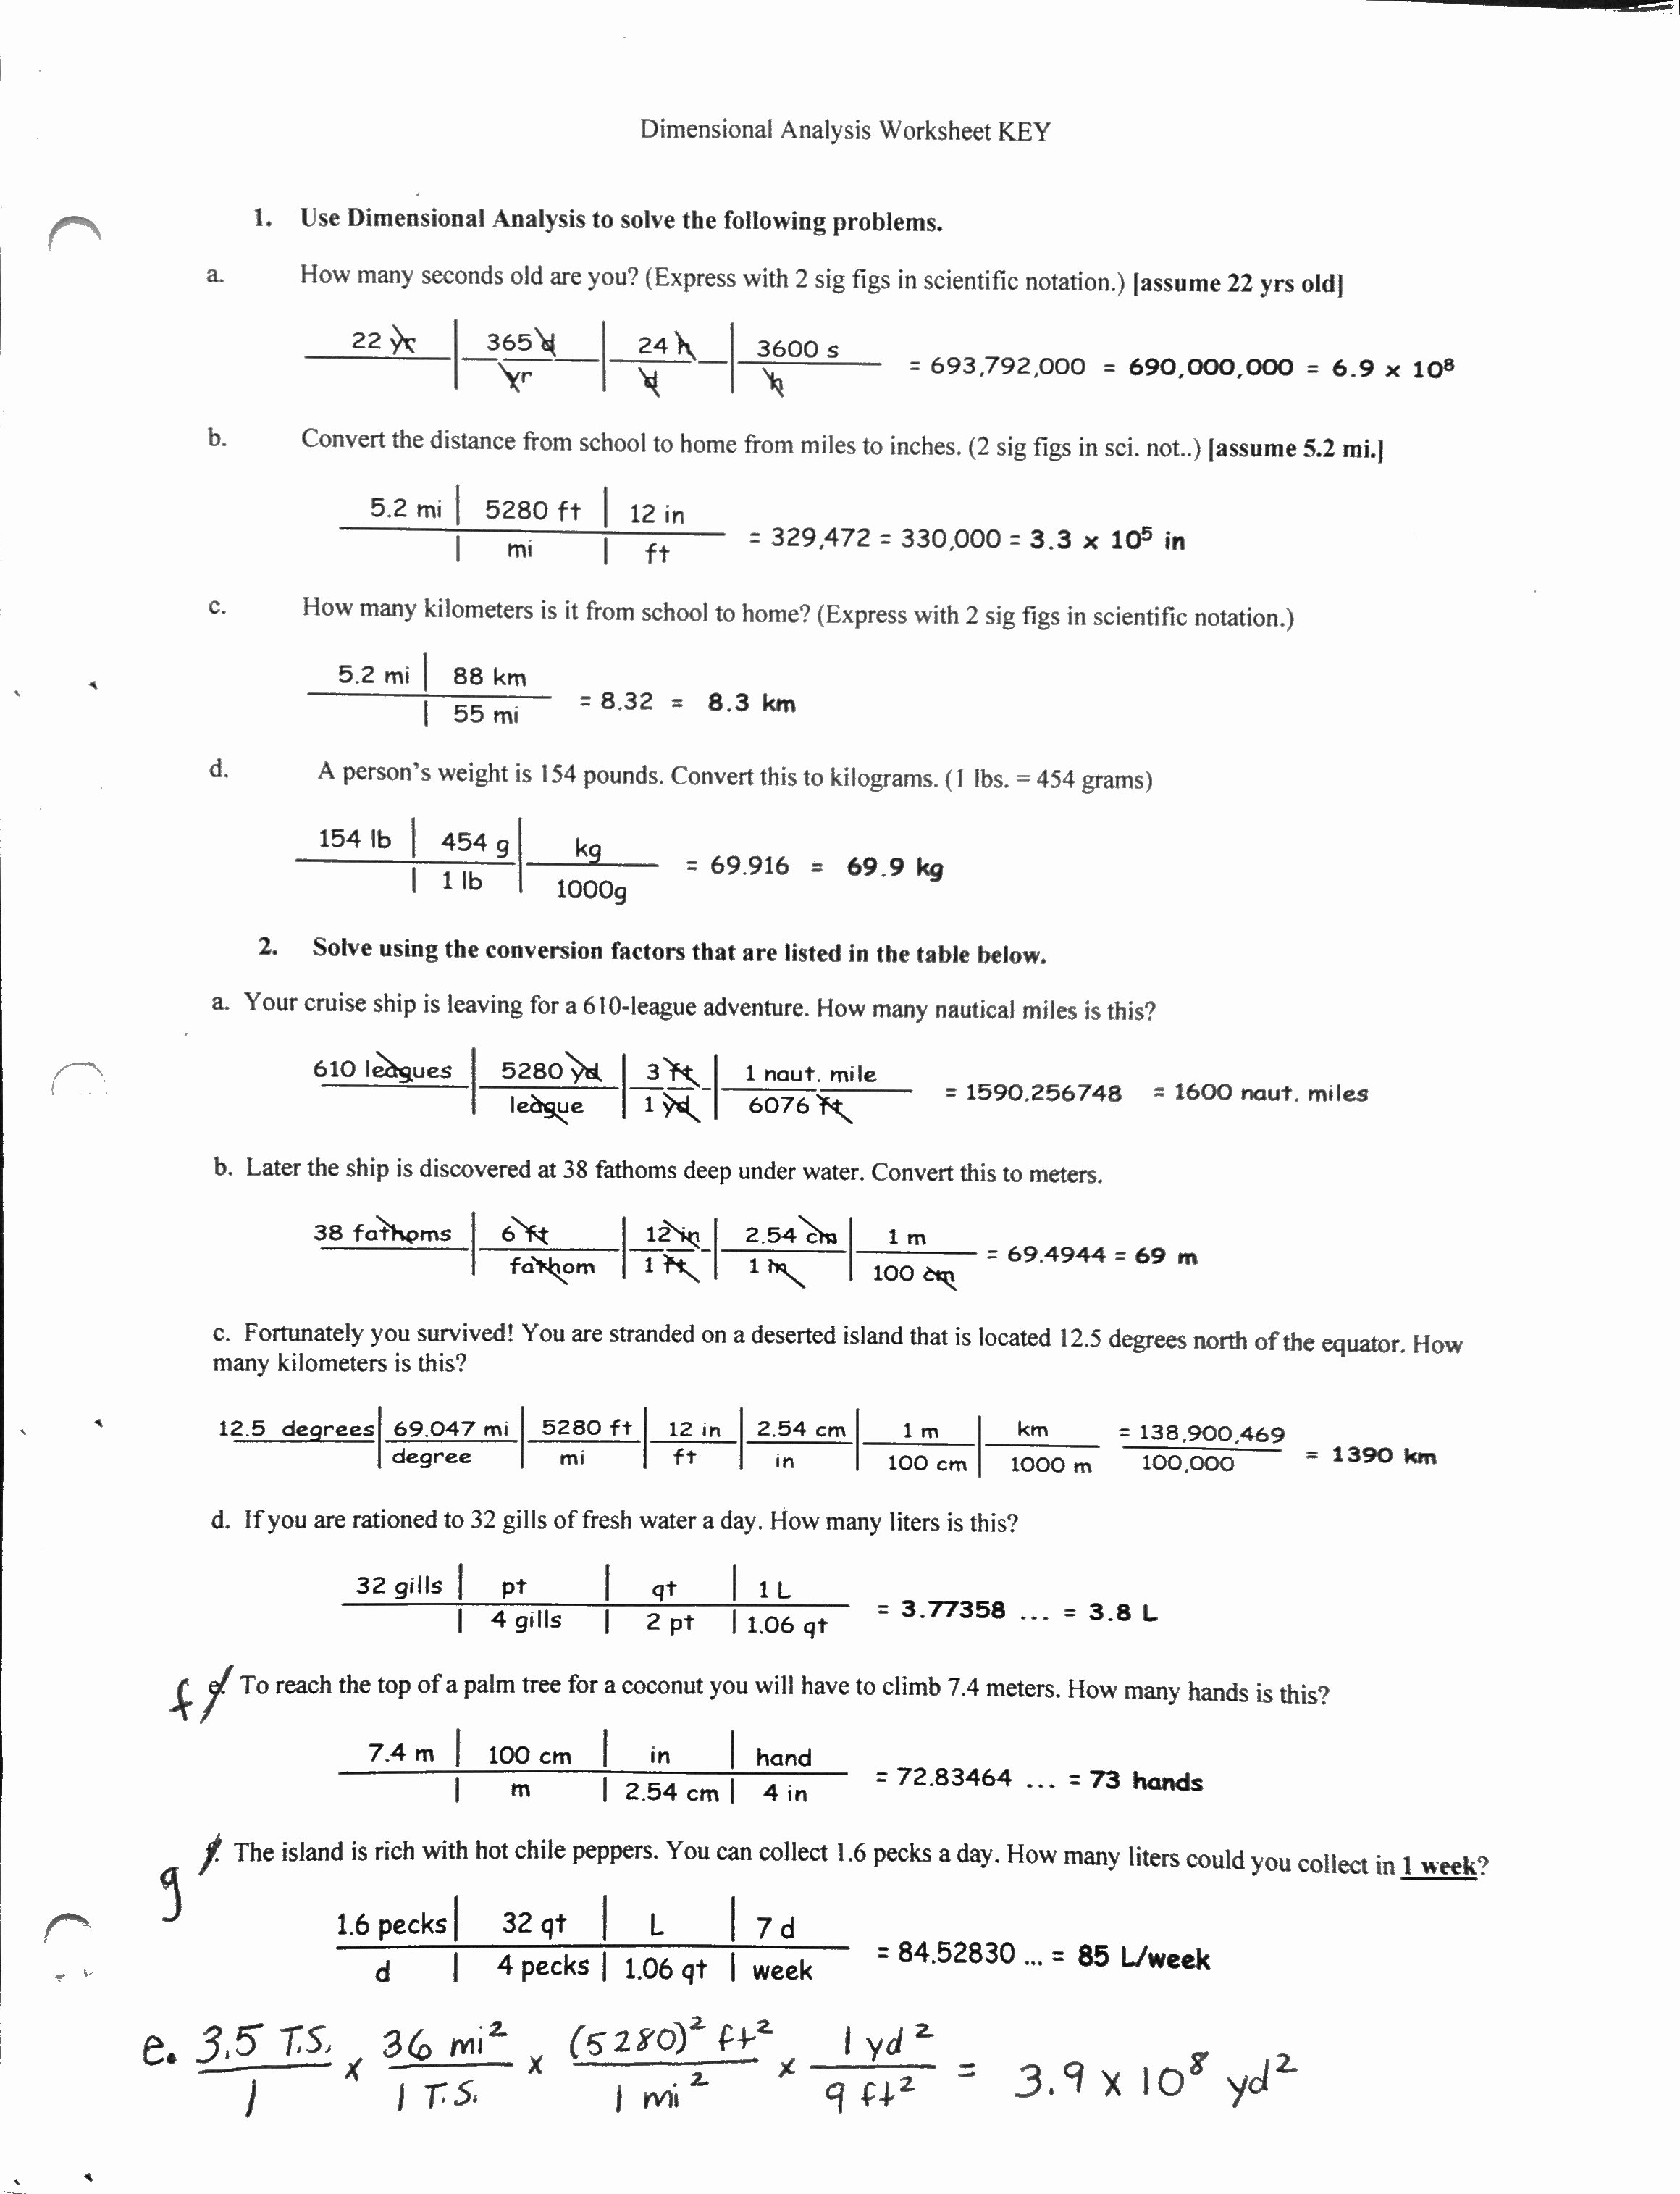 Dimensional Analysis Practice Worksheet Awesome Dimensional Analysis Worksheet with Answer Key the Best